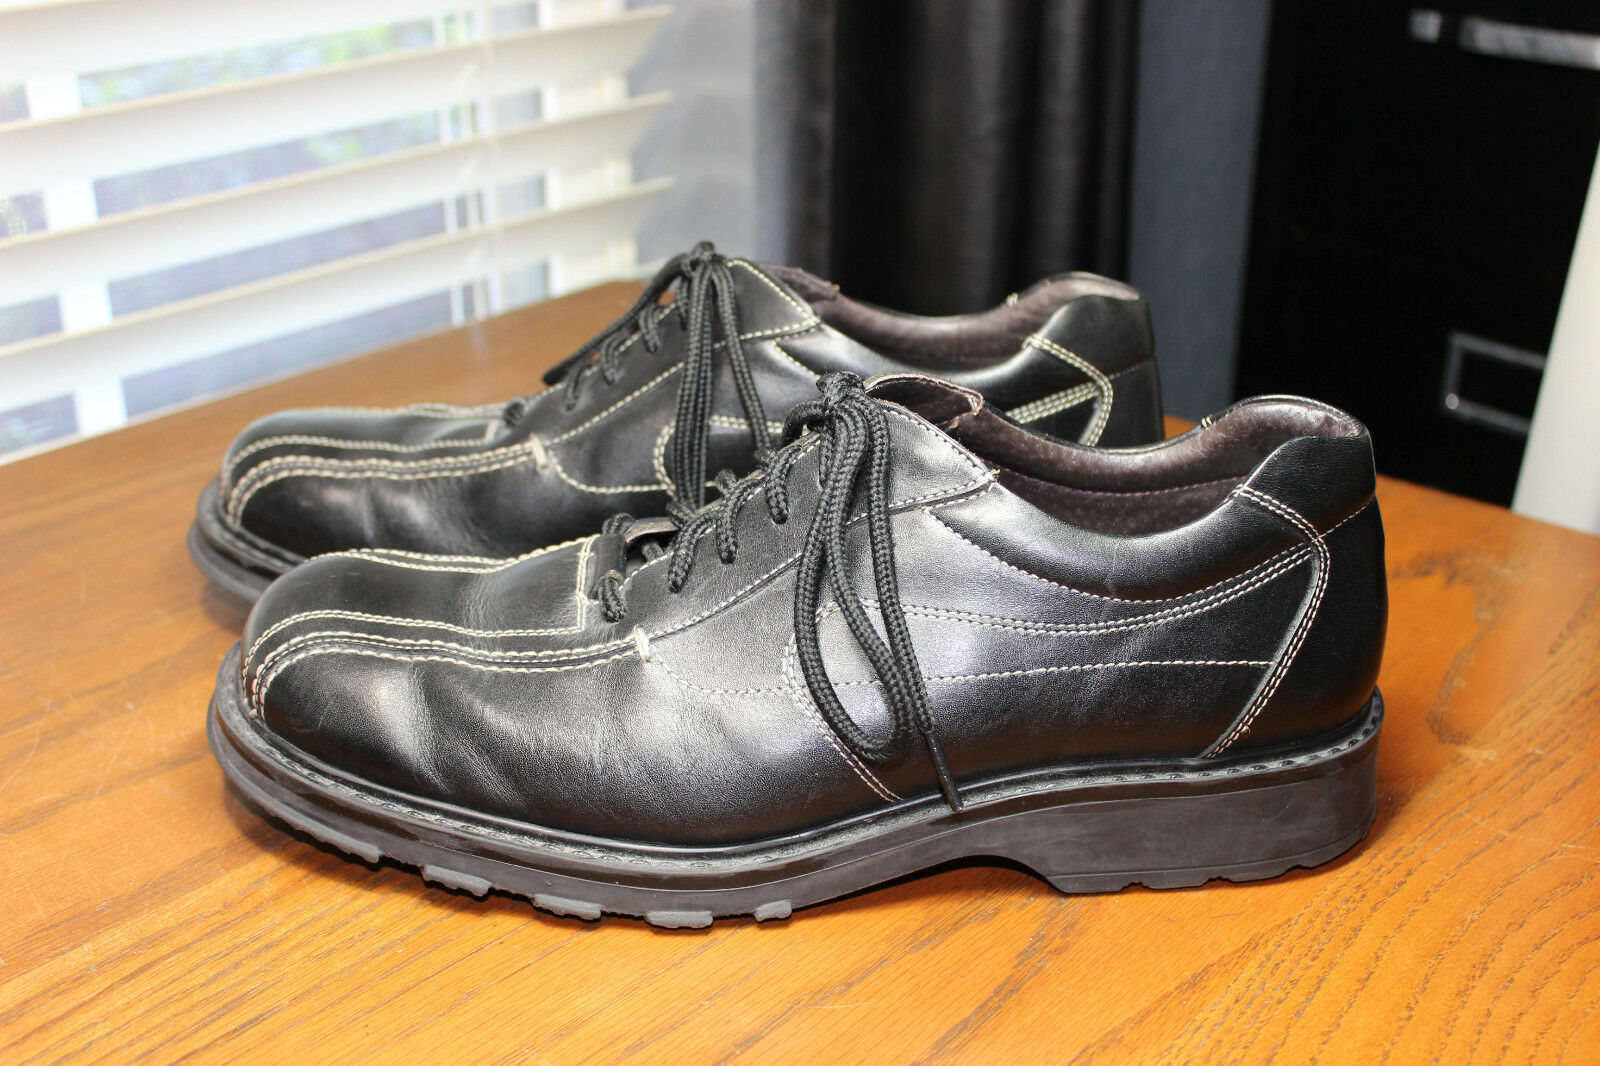 BASS schwarz ITALIAN LEATHER RAKE RAKE RAKE OXFORDS Größe 10.5 DRESS LACE UP MINOR WEAR e86476